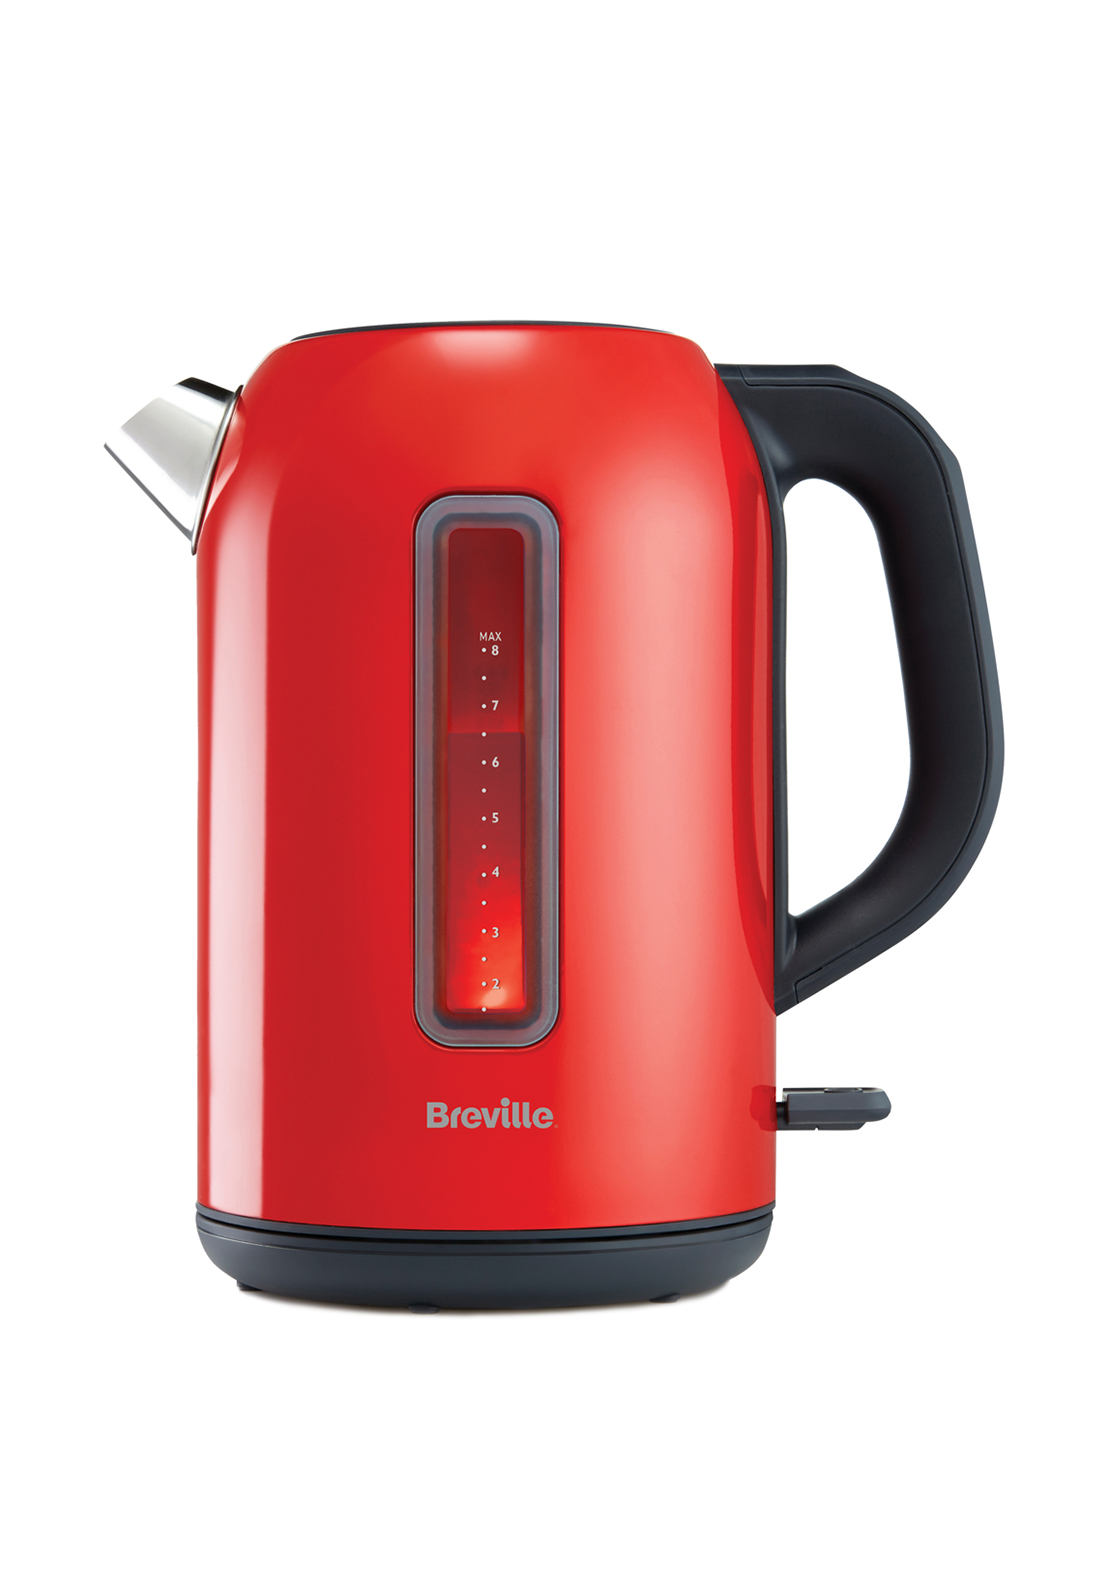 Breville 1.7L Jug Kettle Red